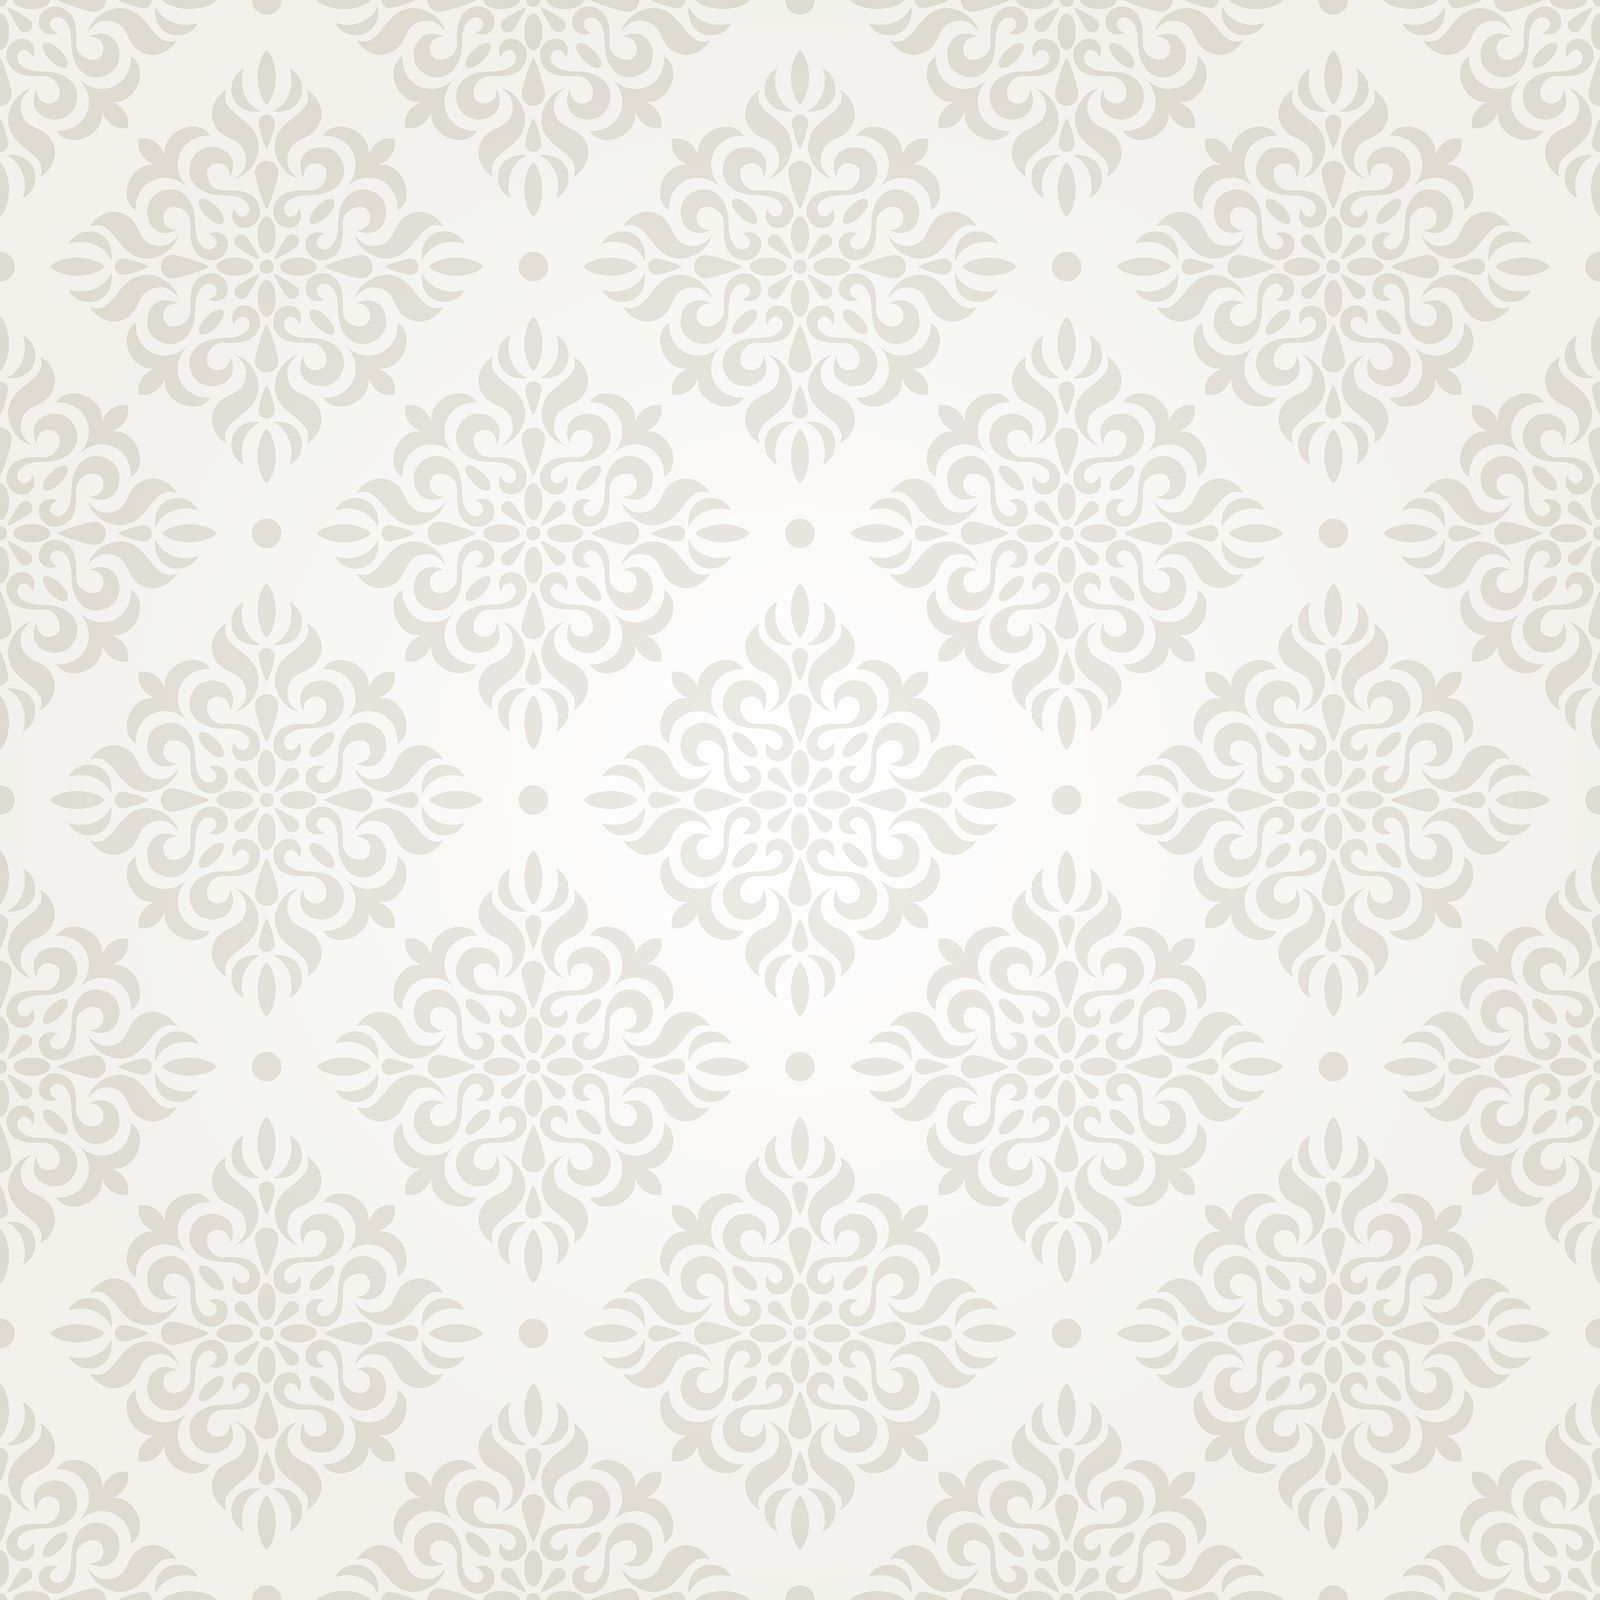 Vintage wedding pattern wallpaper texture pinterest for Ornament tapete rosa